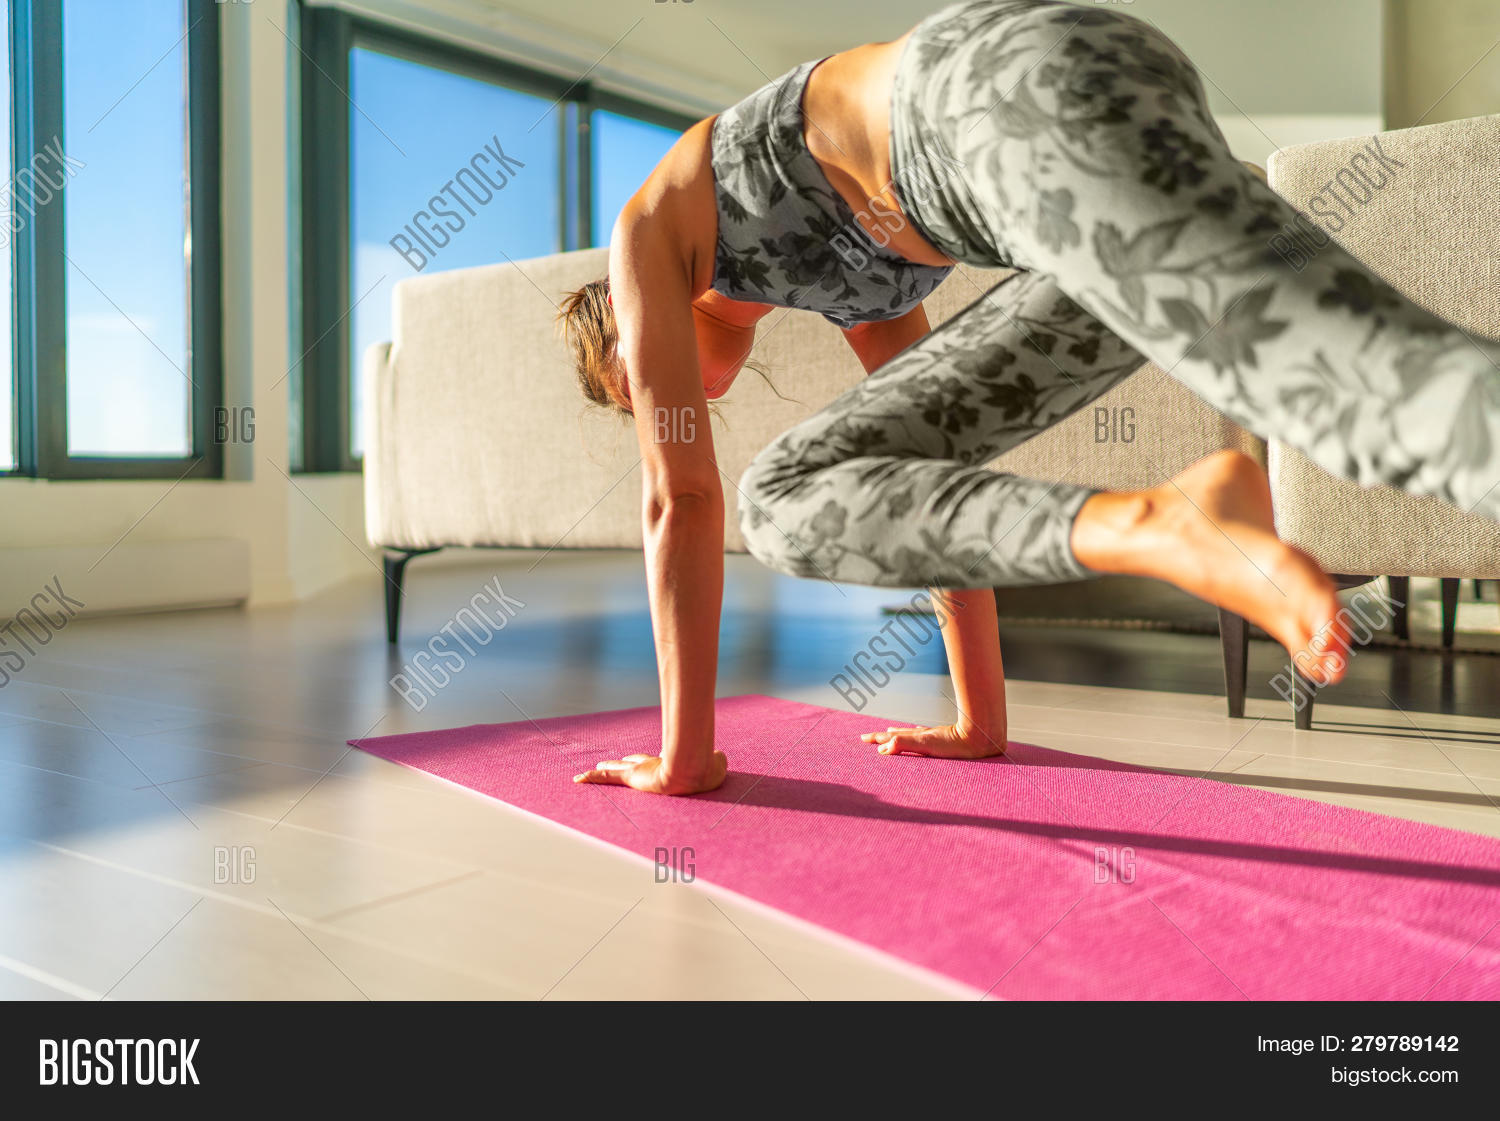 Home Fitness Woman Image Photo Free